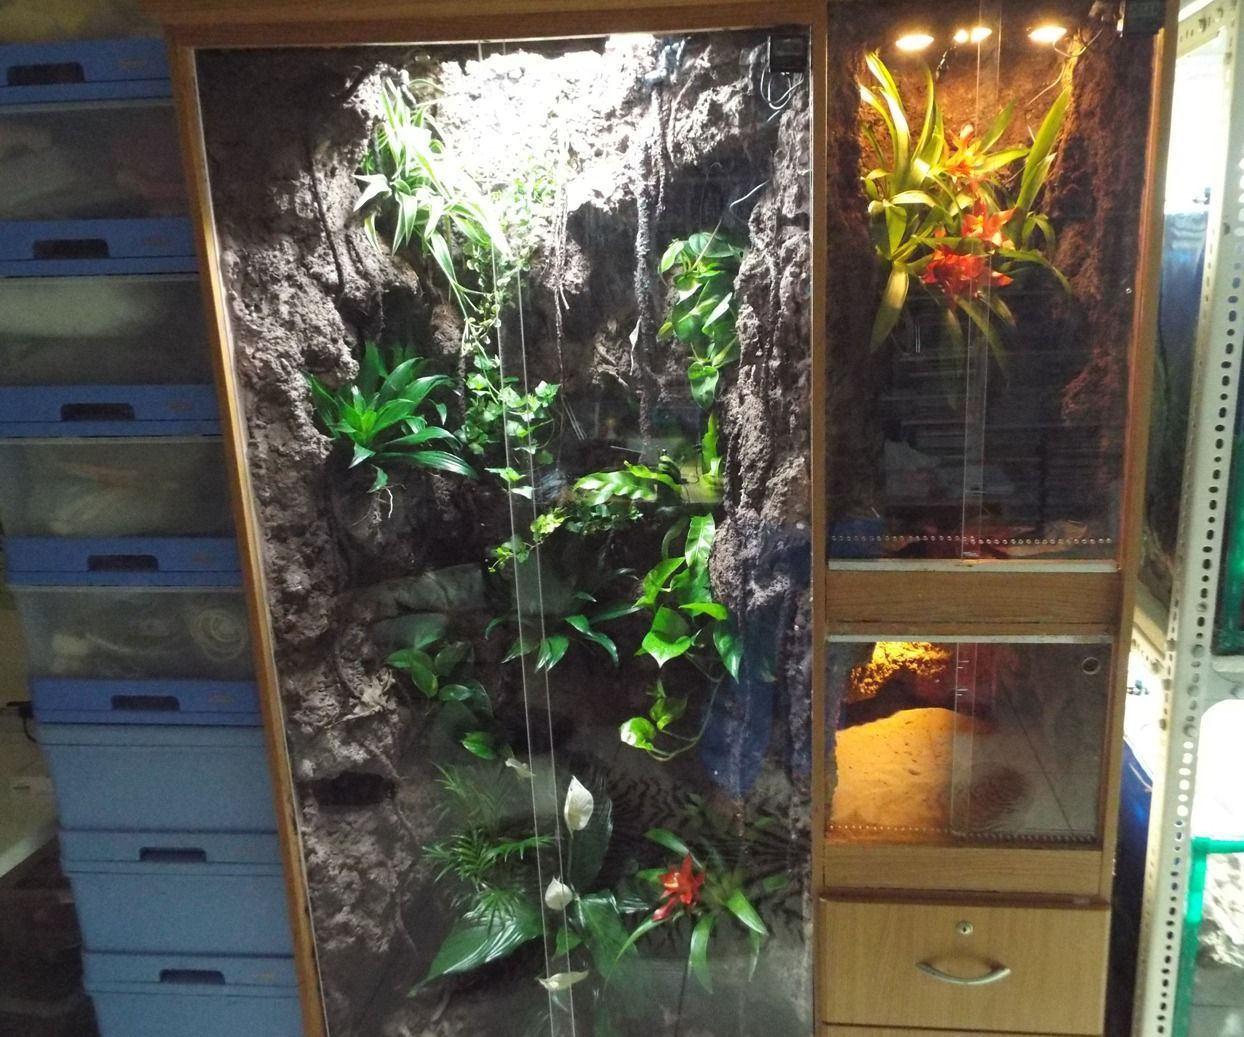 Converting Clothes Cabinet Into A Multiple Vivarium